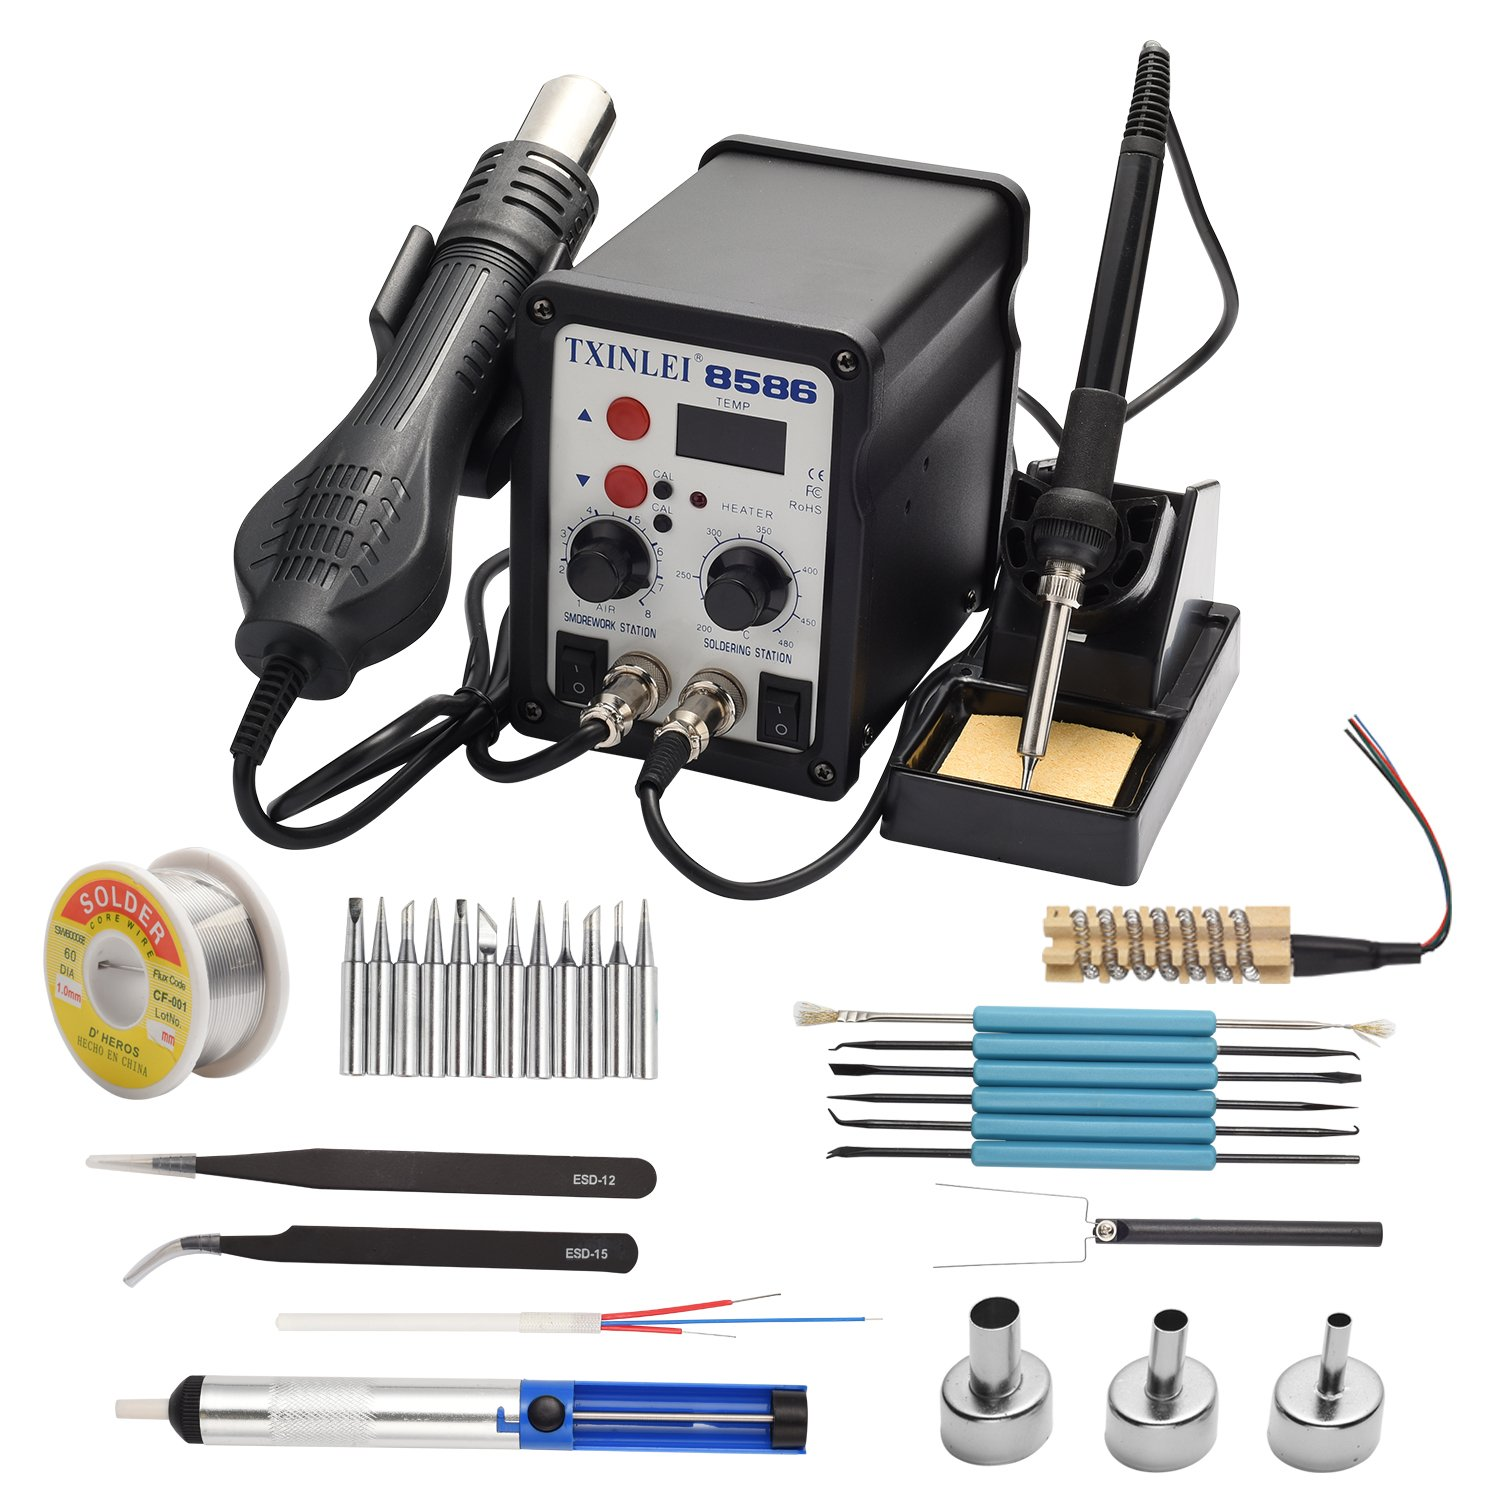 TXINLEI 8586 110V Solder Station, 2 in 1 Digital Display SMD Hot Air Rework Station and Soldering Iron, 12pcs Different Soldering Tips,Solder Wire,Tweezers ...